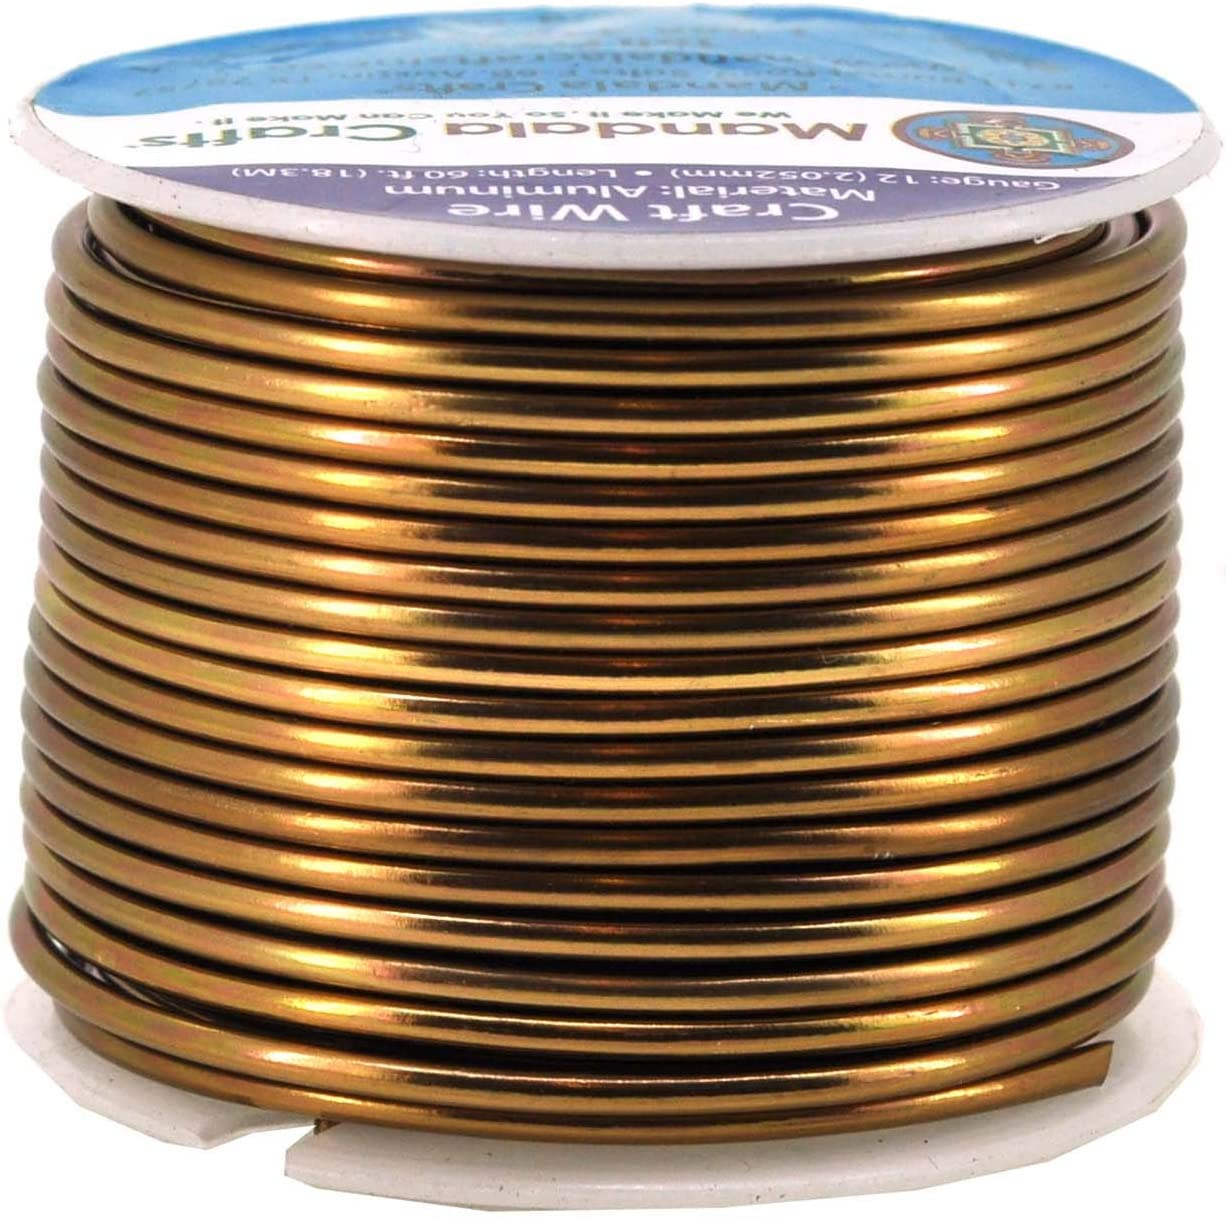 Mandala Crafts Anodized Aluminum Wire for Sculpting, Armature, Jewelry Making, Gem Metal Wrap, Garden, Colored and Soft, 1 Roll(12 Gauge, Brown)